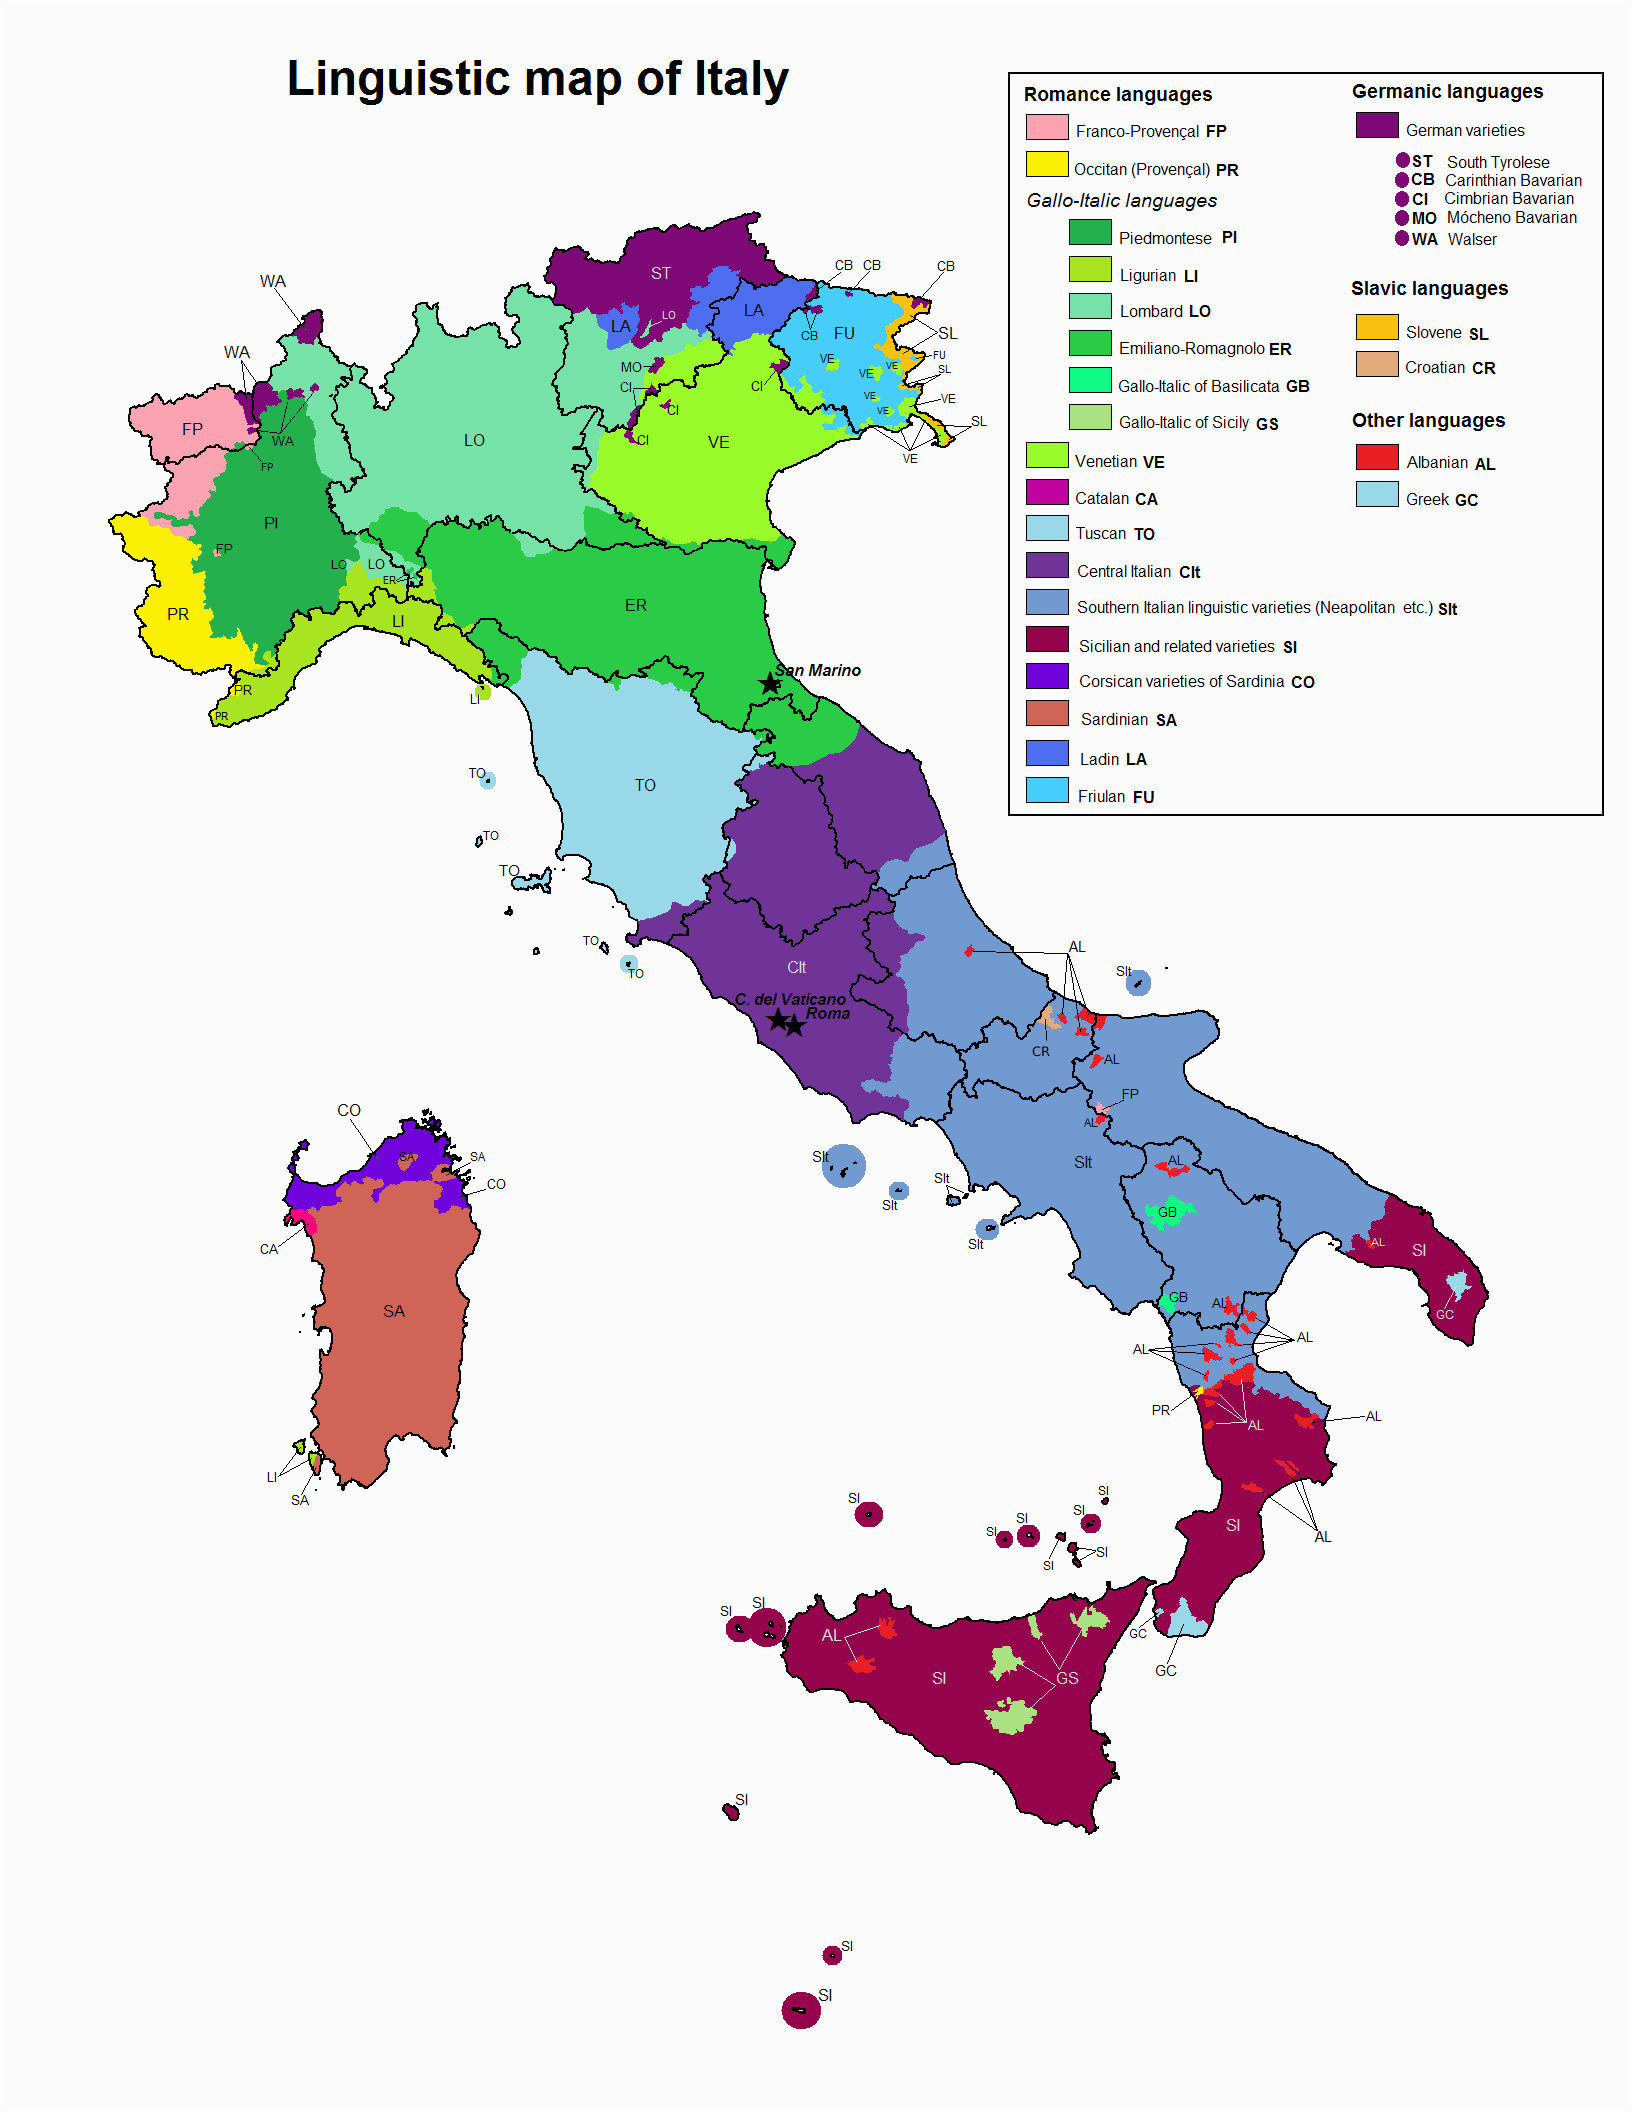 Map Of North Italy With Cities.Map Of North Italy With Cities Linguistic Map Of Italy Maps